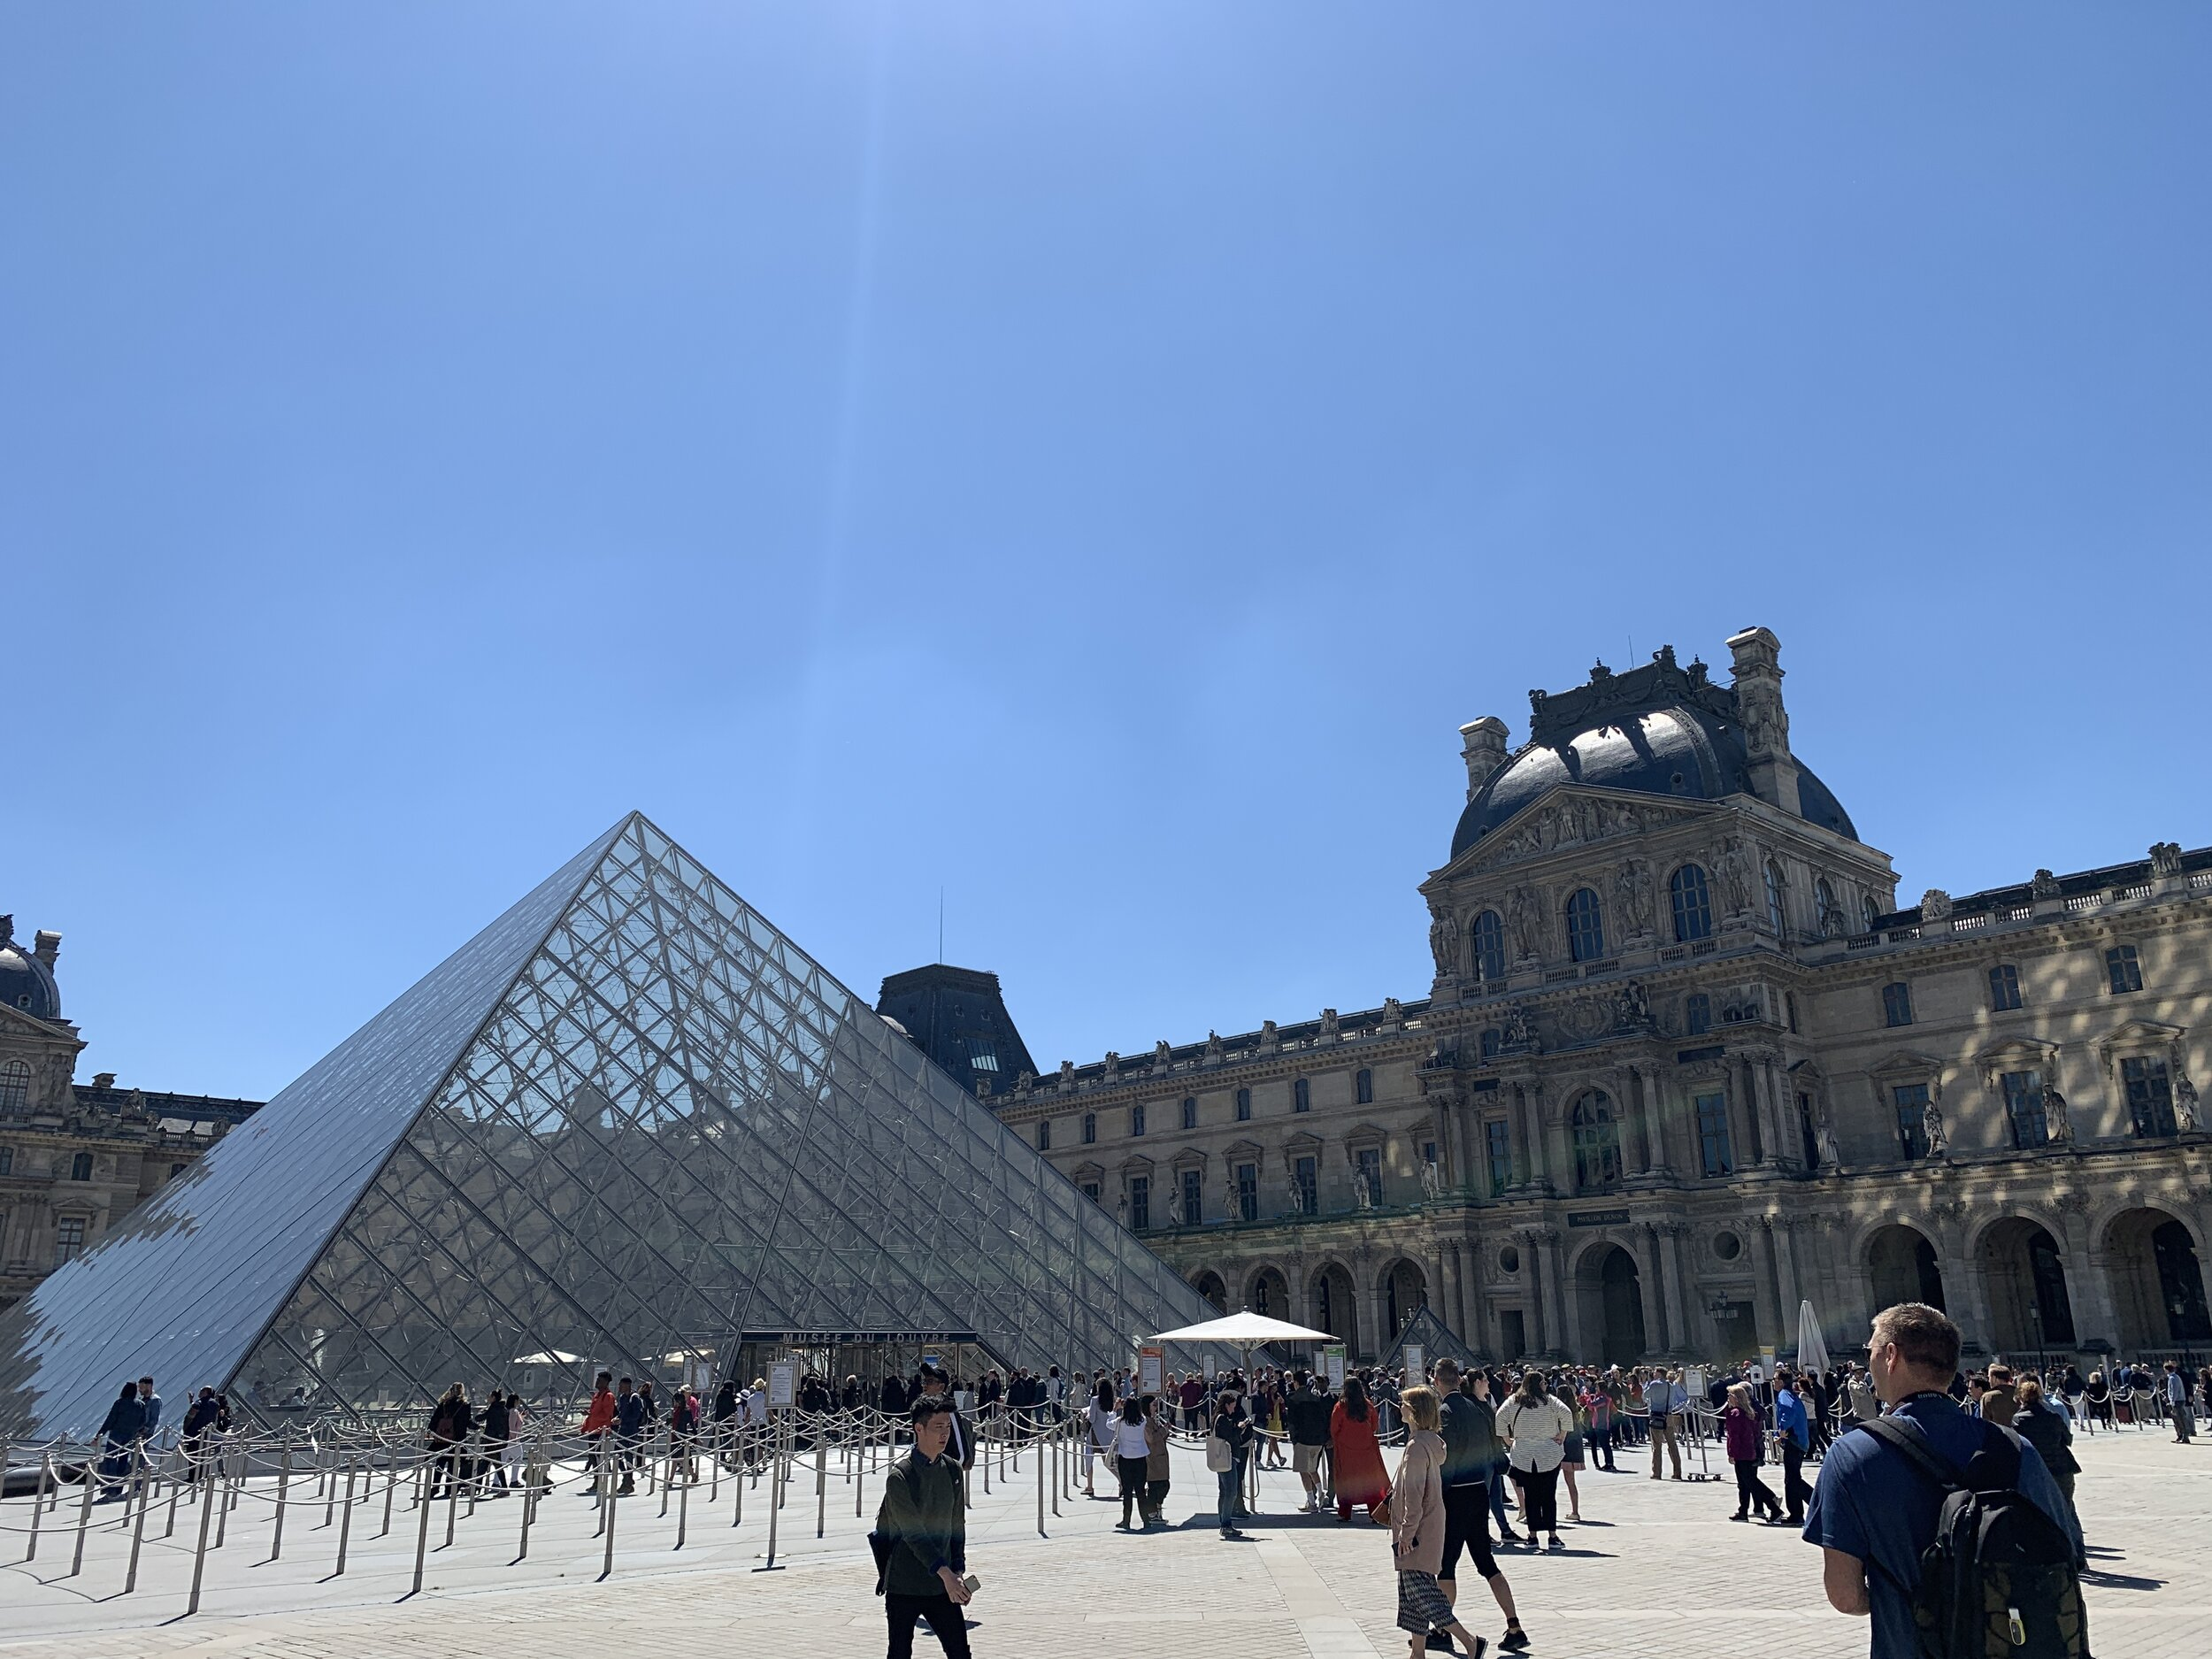 It was great to avoid the huge line outside of the Louvre.